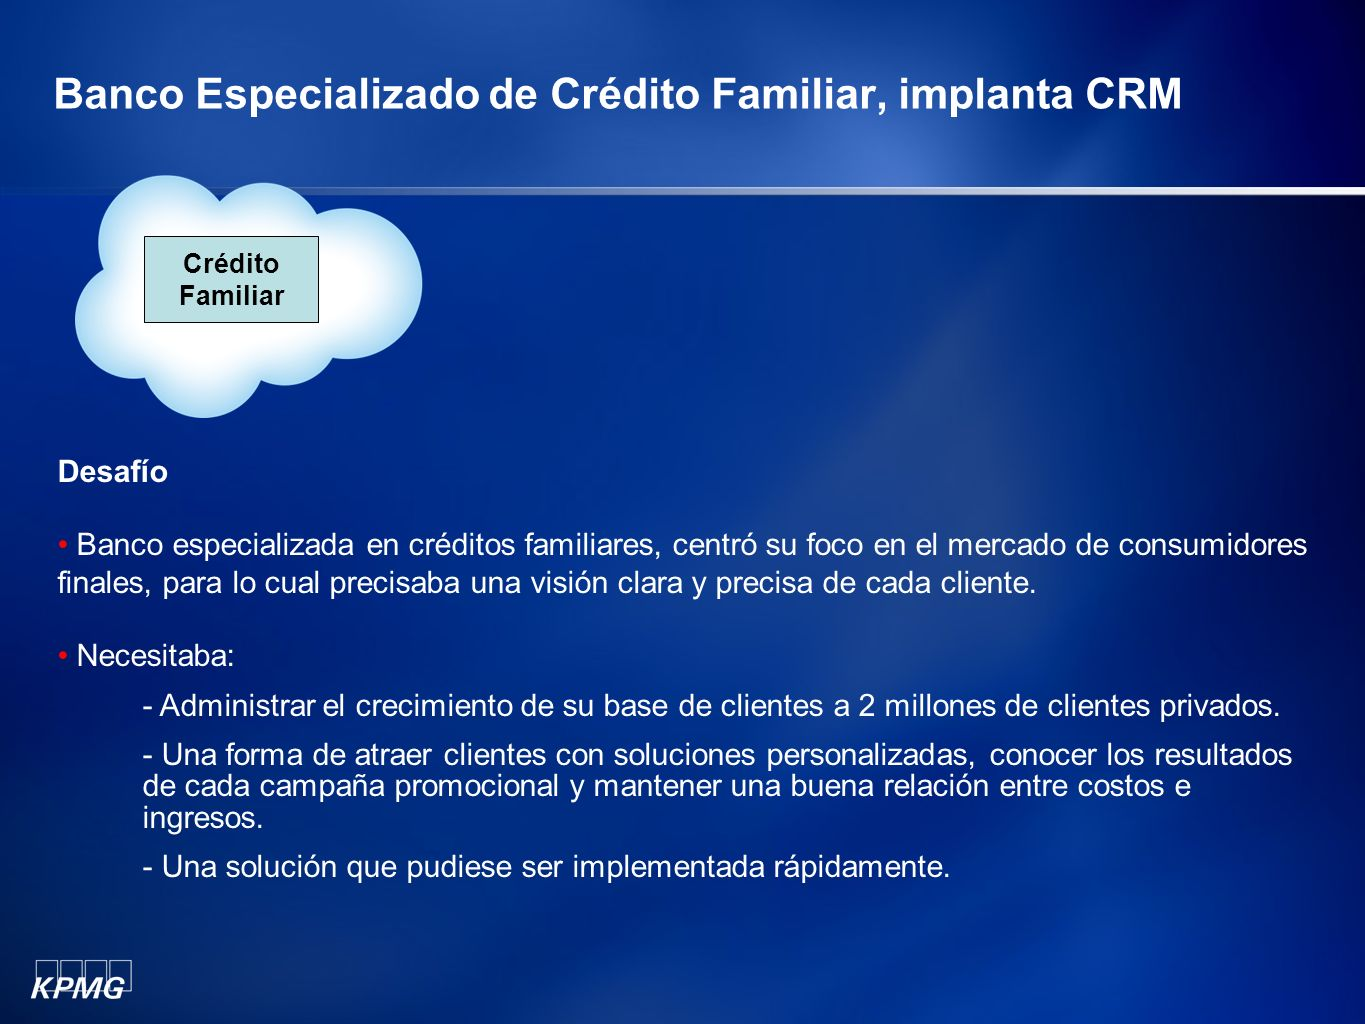 Banco Especializado de Crédito Familiar, implanta CRM